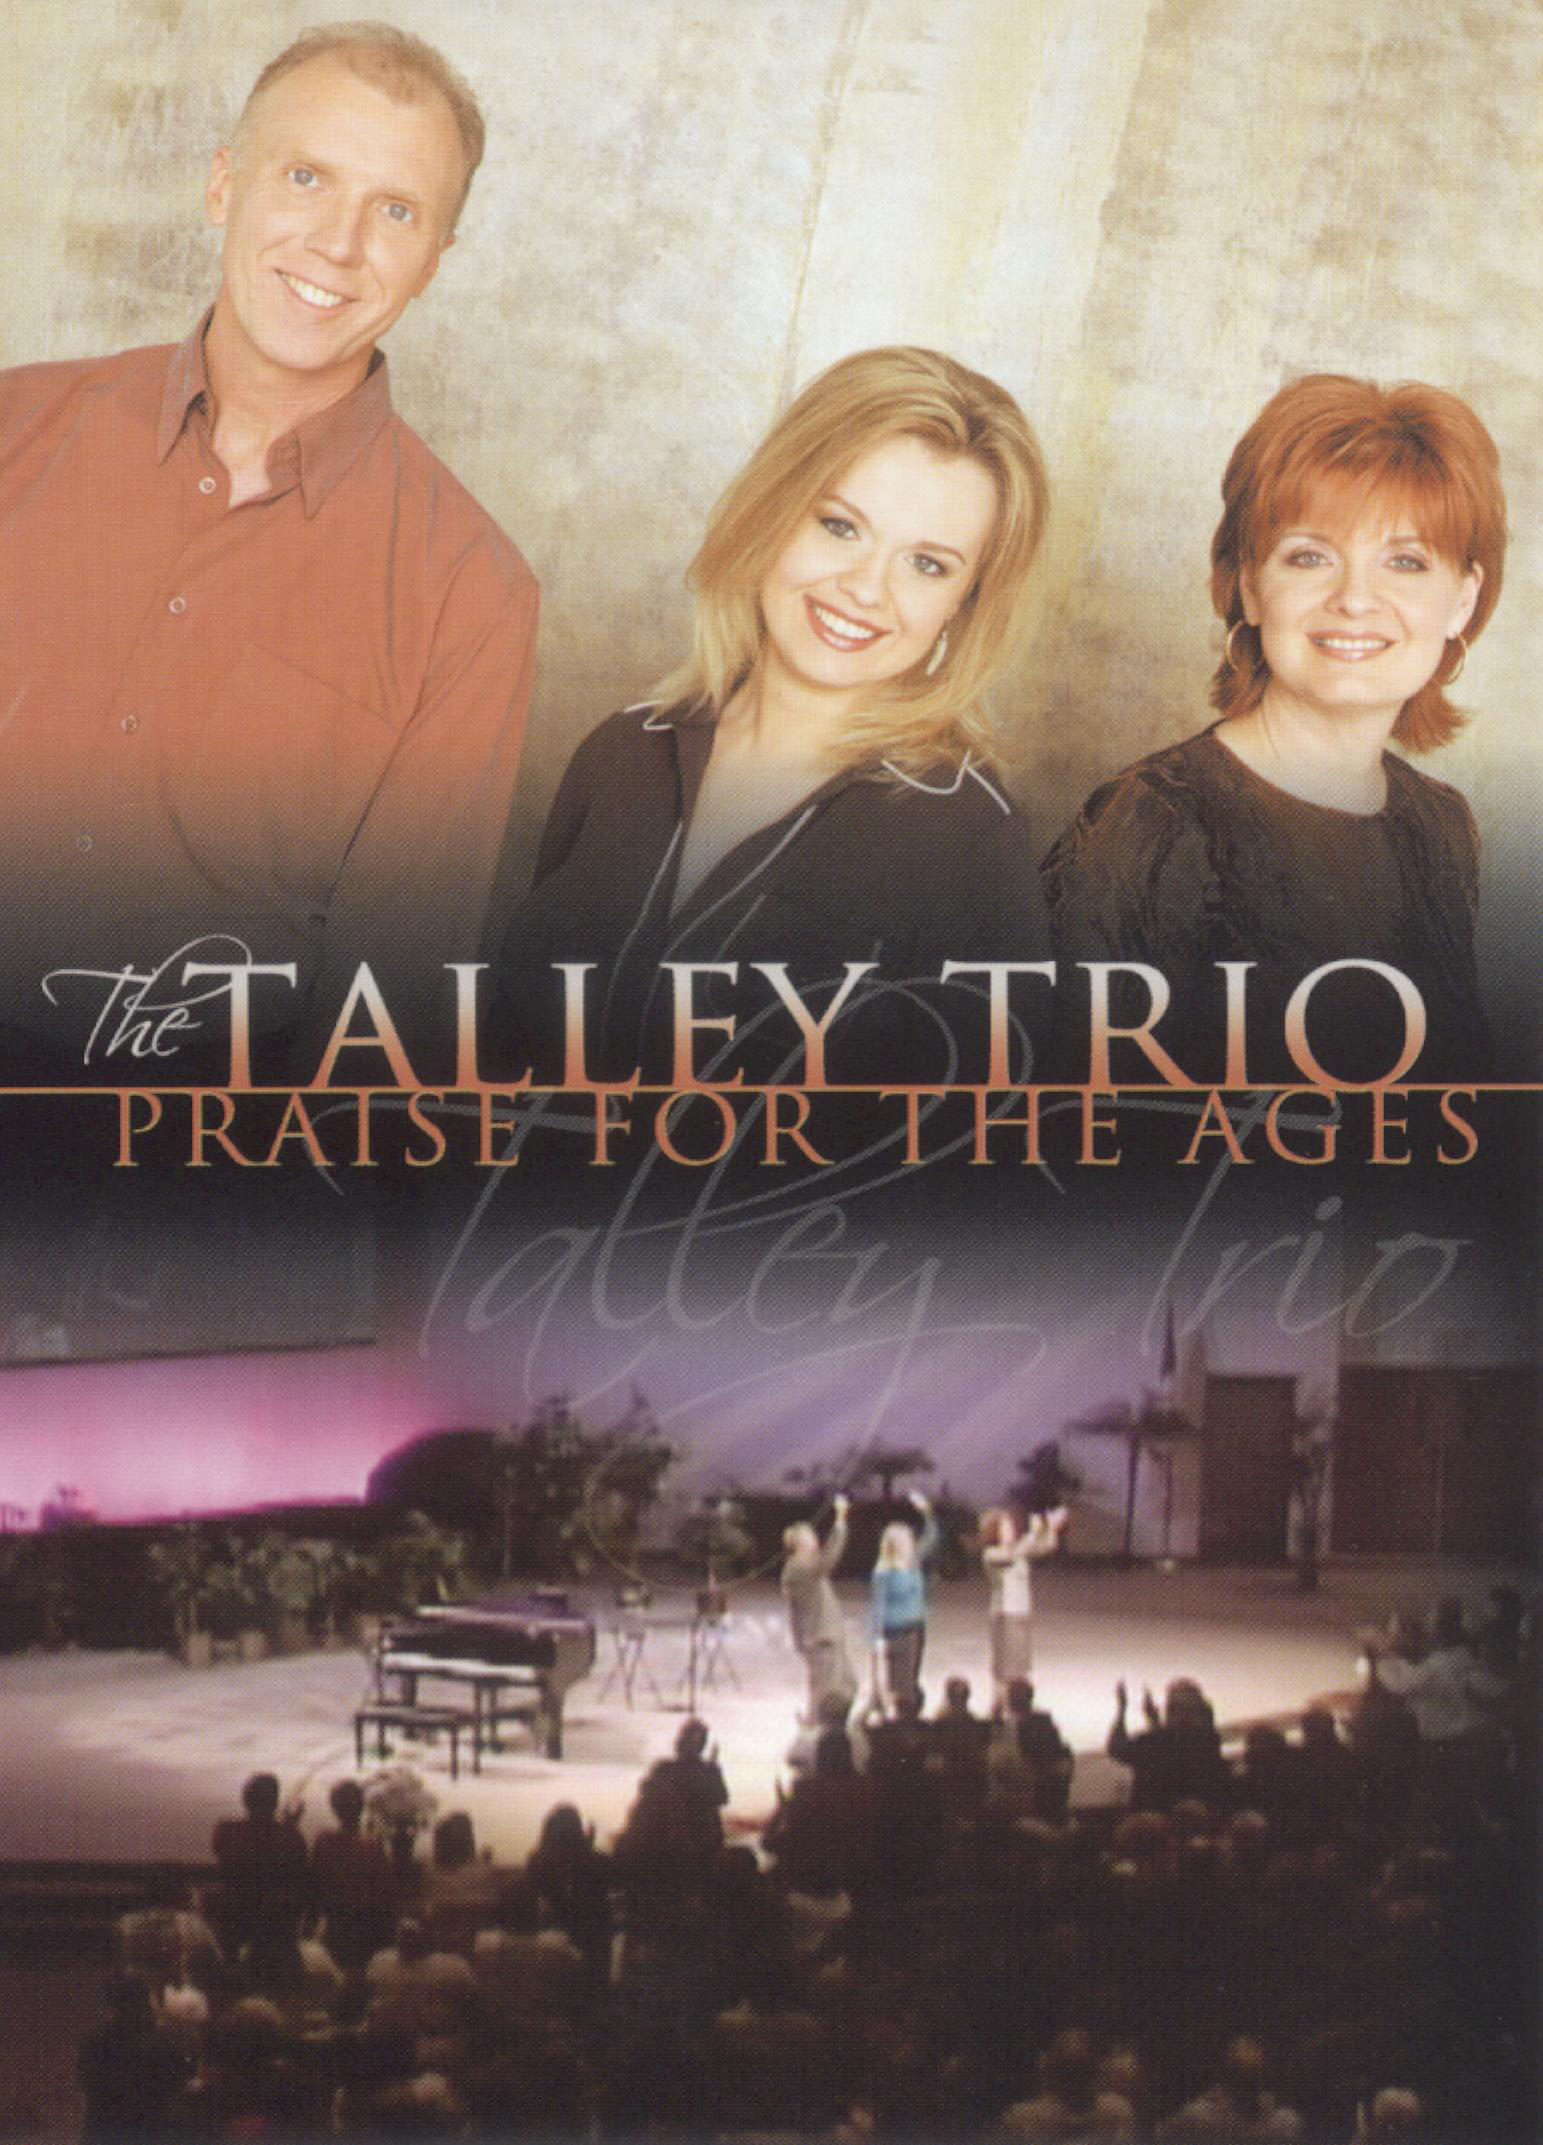 The Talley Trio: Praise for the Ages